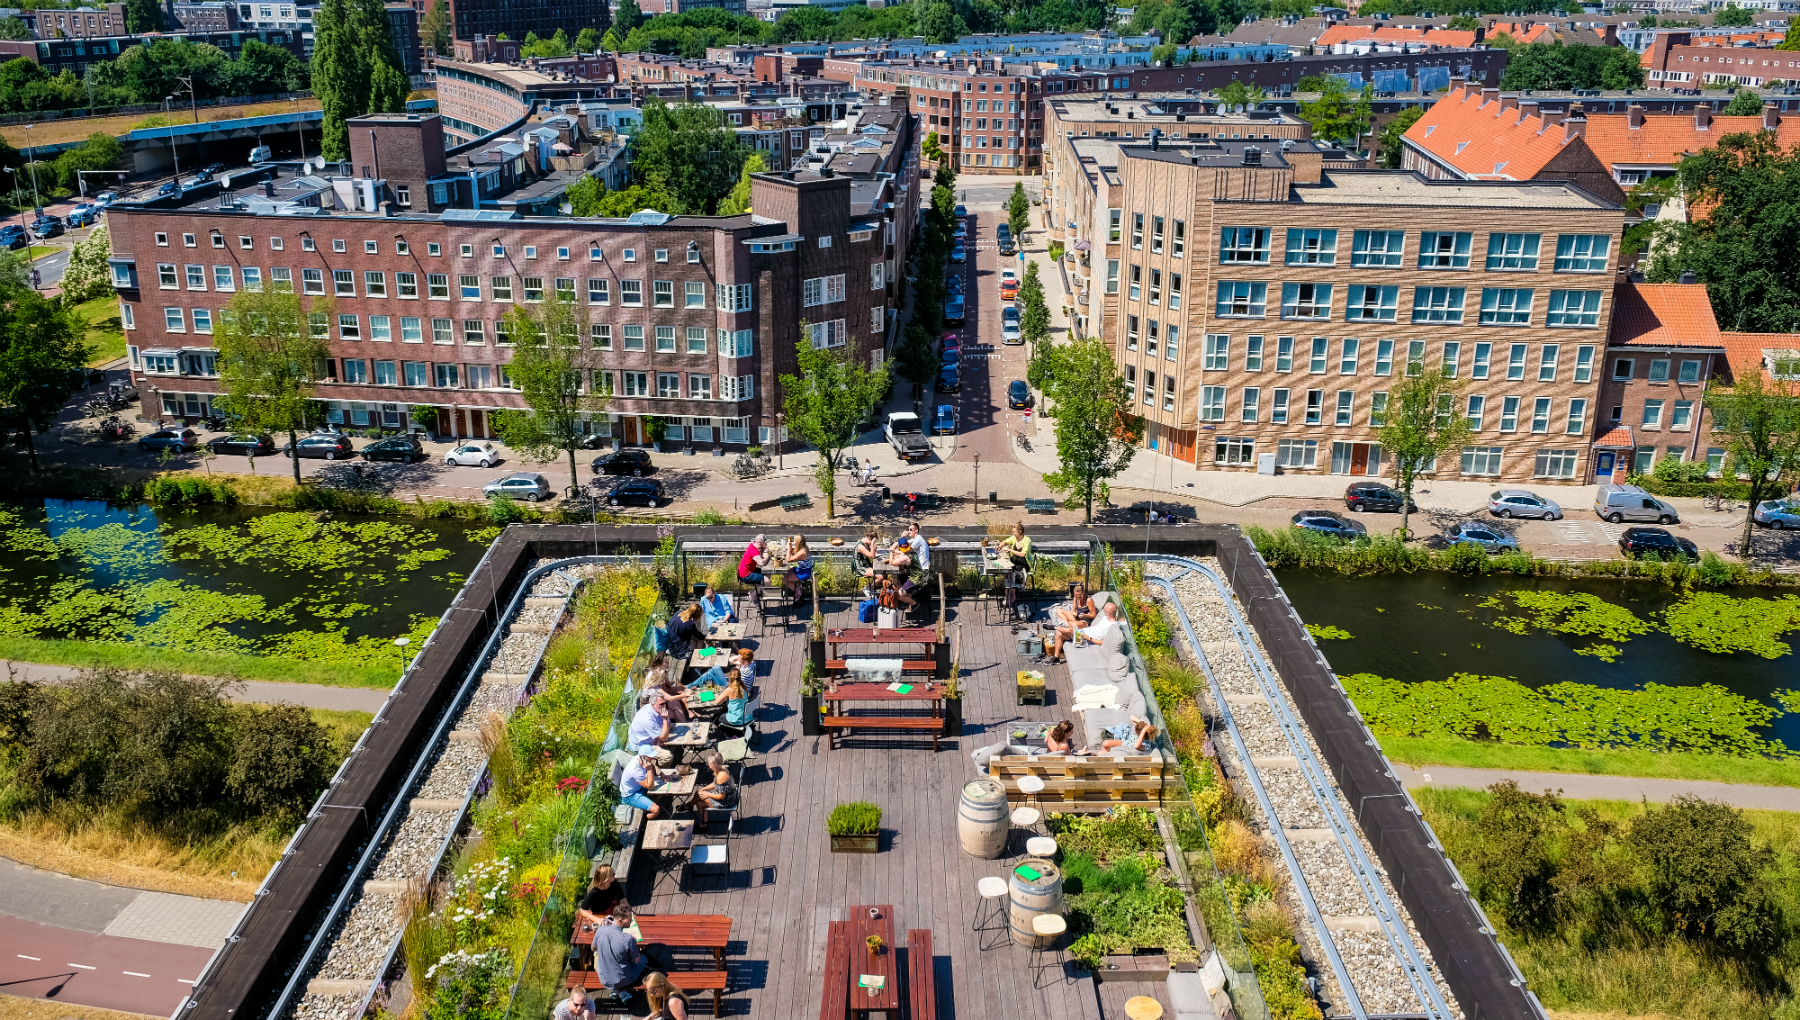 rooftop bar - dakterras - tips - Nederland